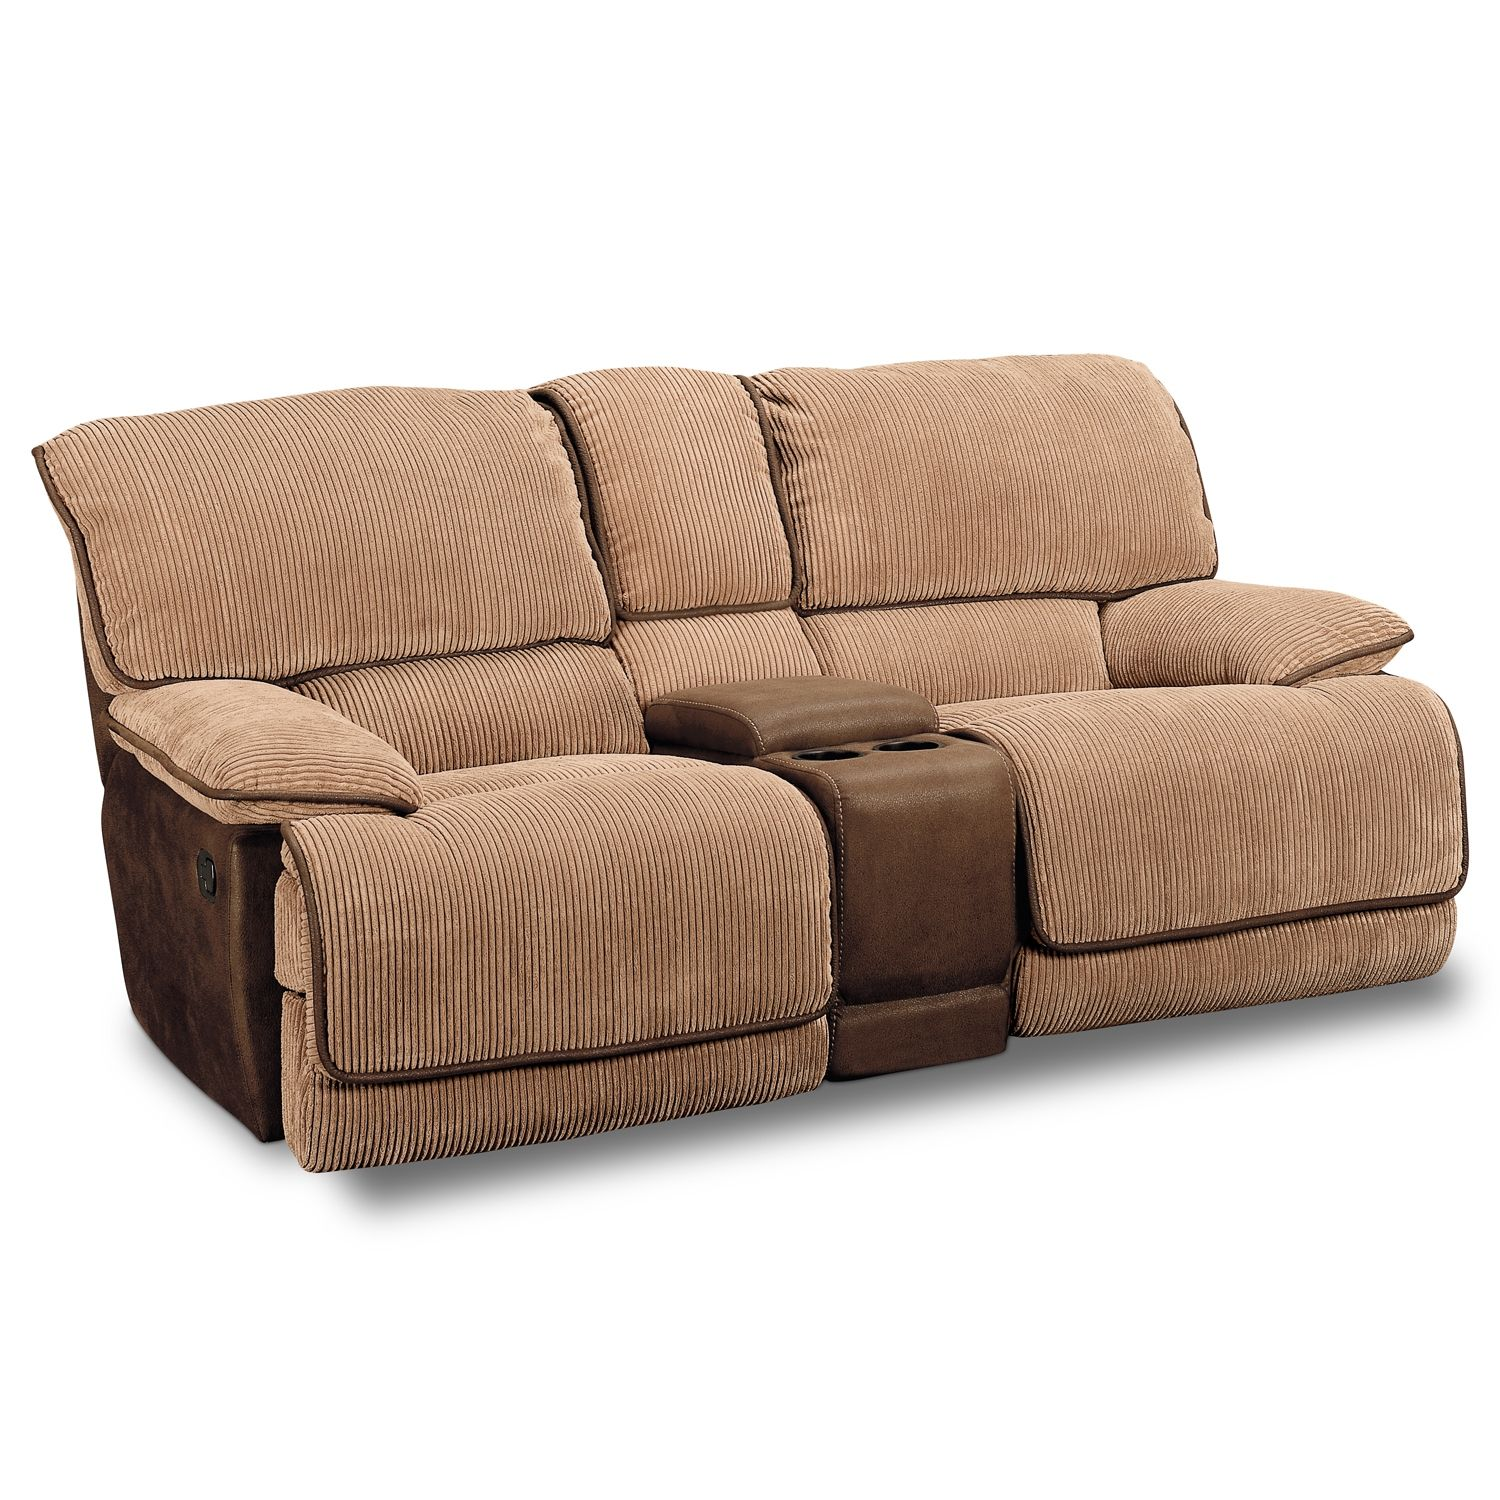 10 Incredible Ideas How To Improve Reclining Sofa Slip Cover